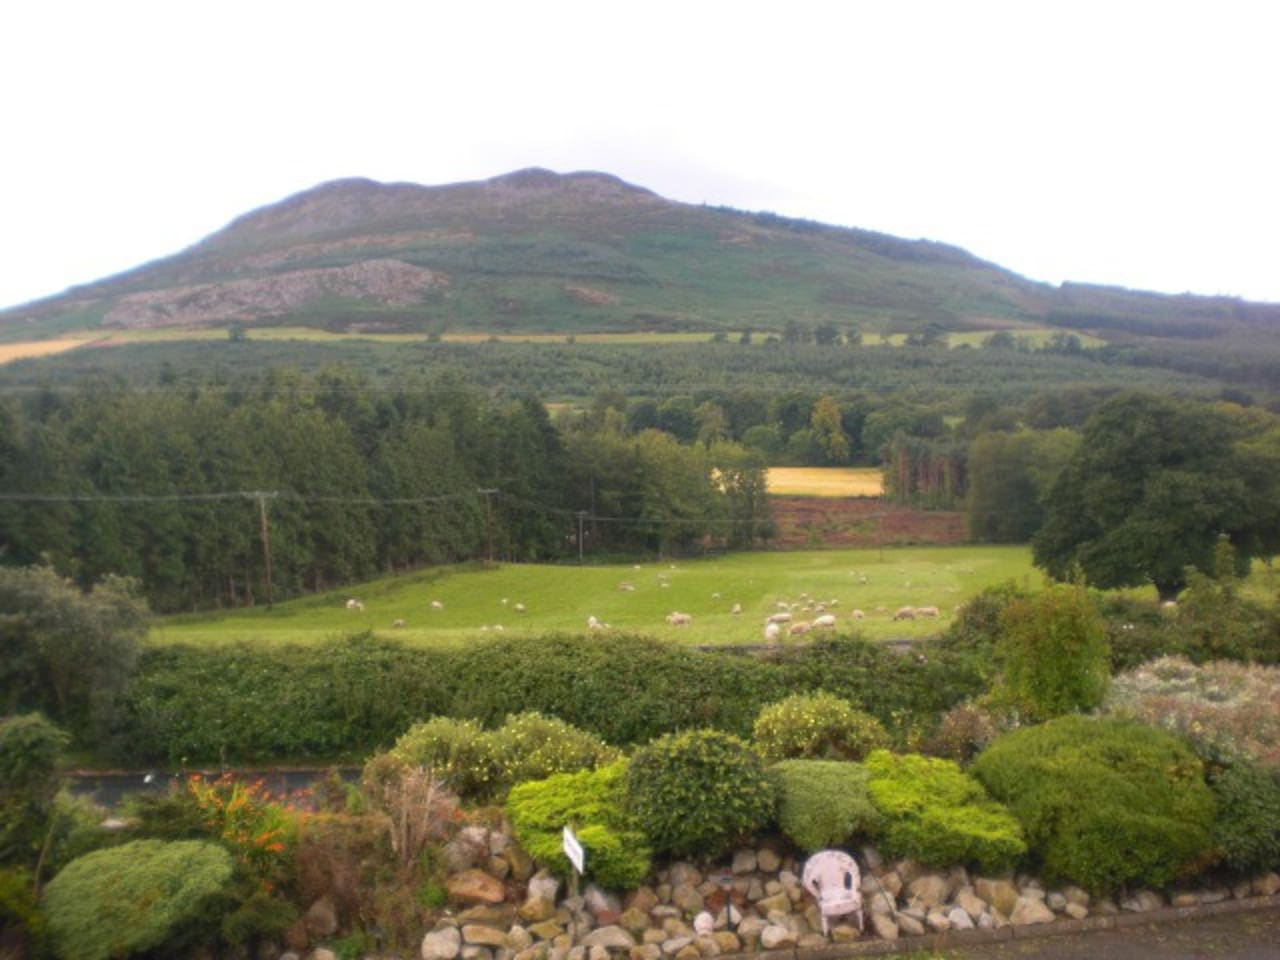 View of the Sugarloaf mountain  from the bedroom window.